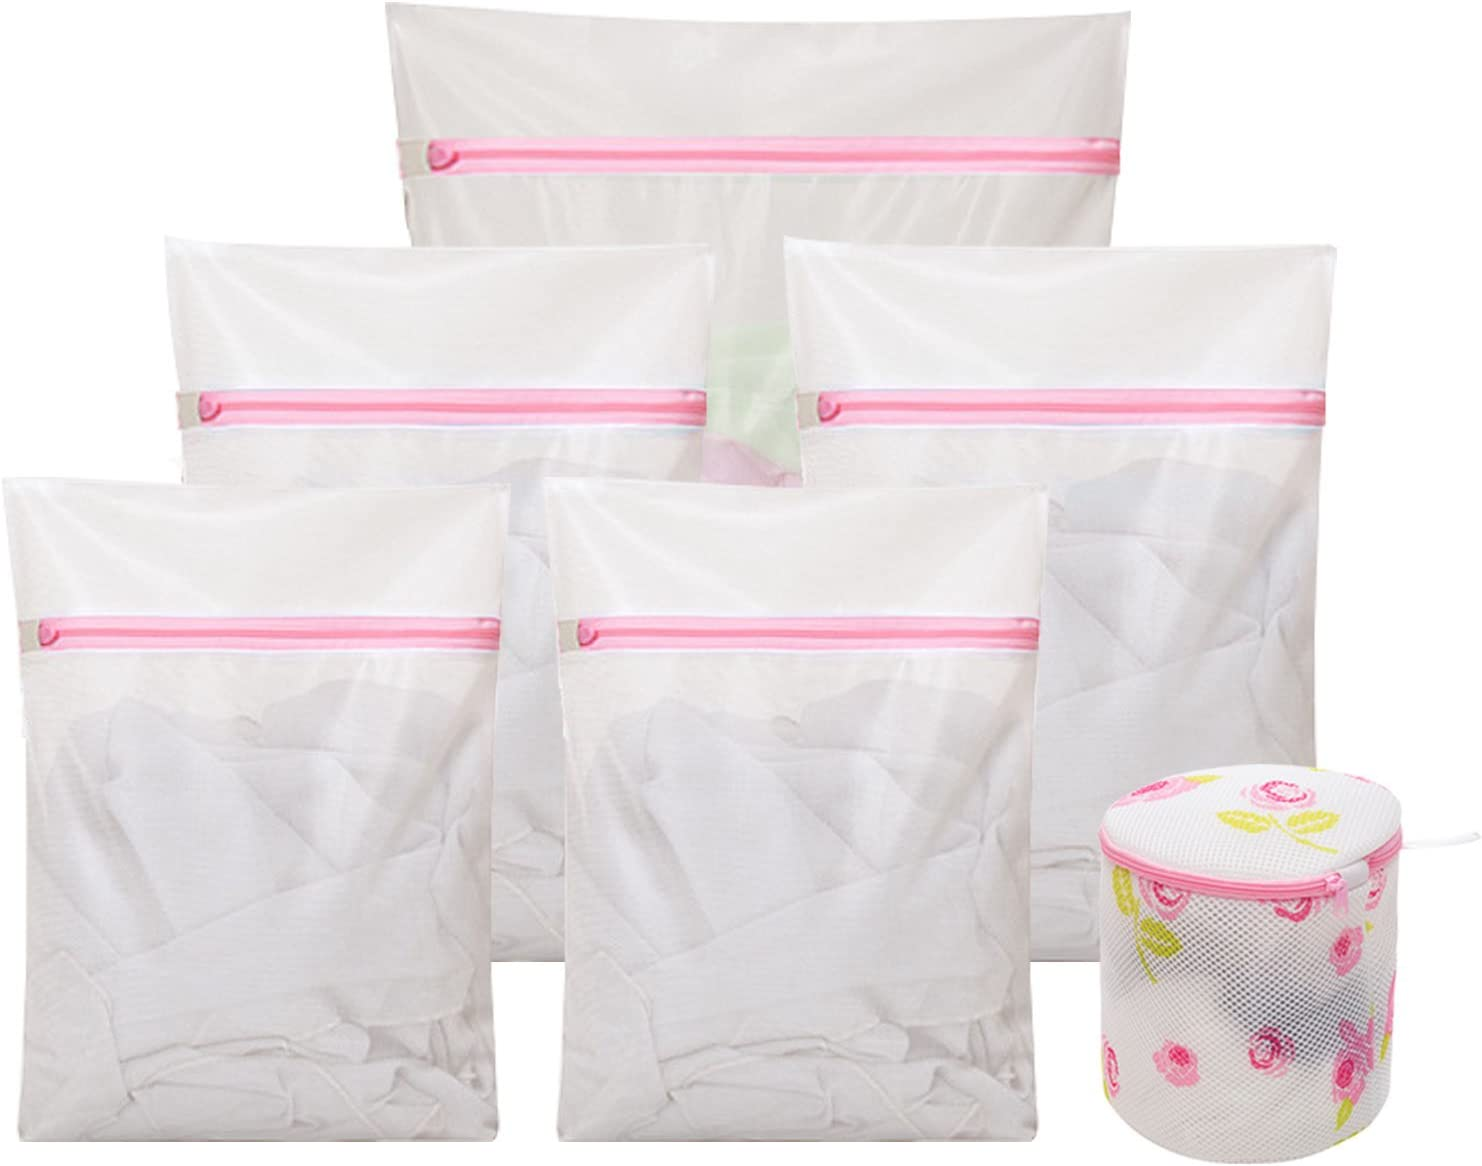 Set of 6 Mesh Laundry Wash Bags (1 Extra Large, 2 Large, 2 Medium, 1 Bras Bag) for Washing Machine Delicates Durable Net Organizer Travel for Bra,Kids Clothes,Lingerie Red Zipped(White)